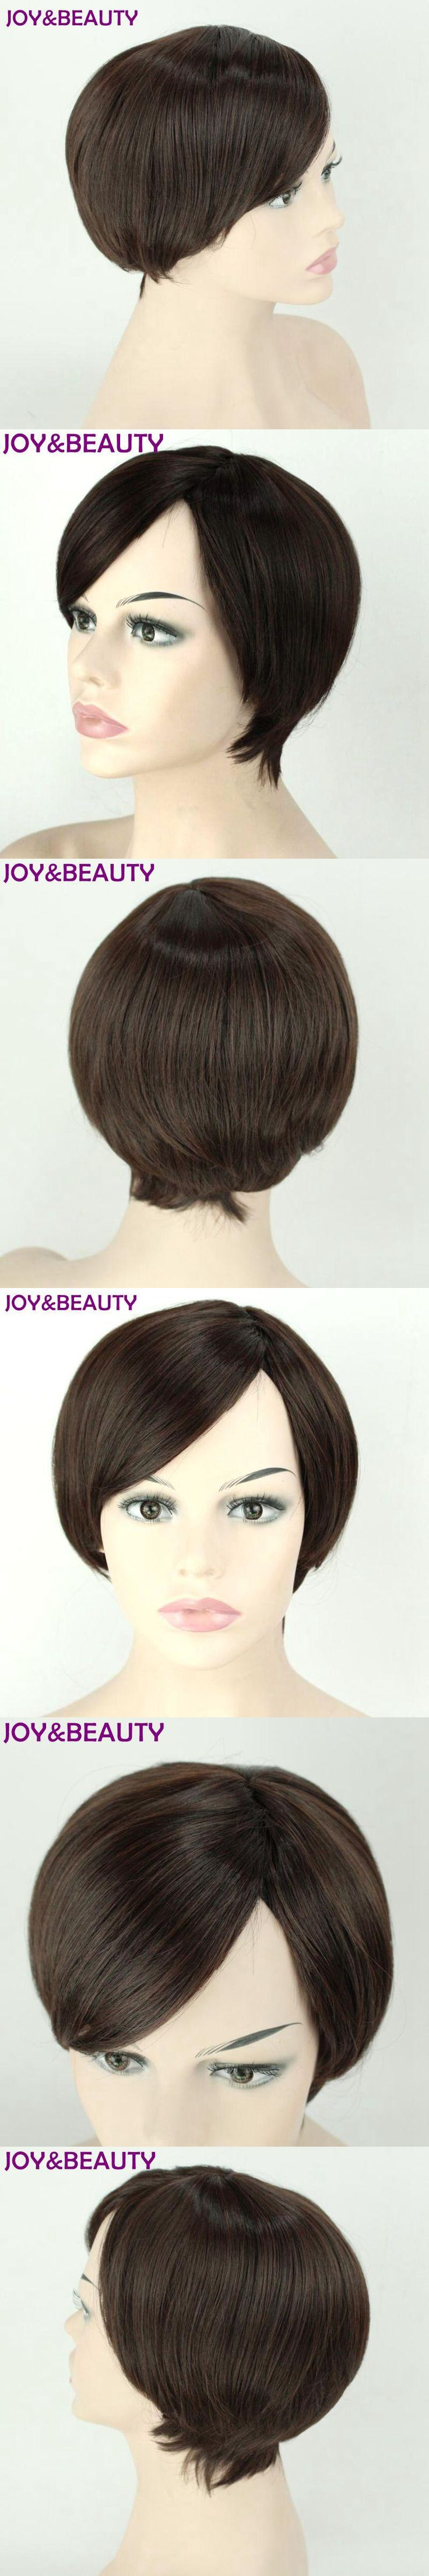 JOY&BEAUTY Short Straight Synthetic Side Parting Bob Wigs Inclined bang High Temperature Fiber Brown Color Women Wig 12inch